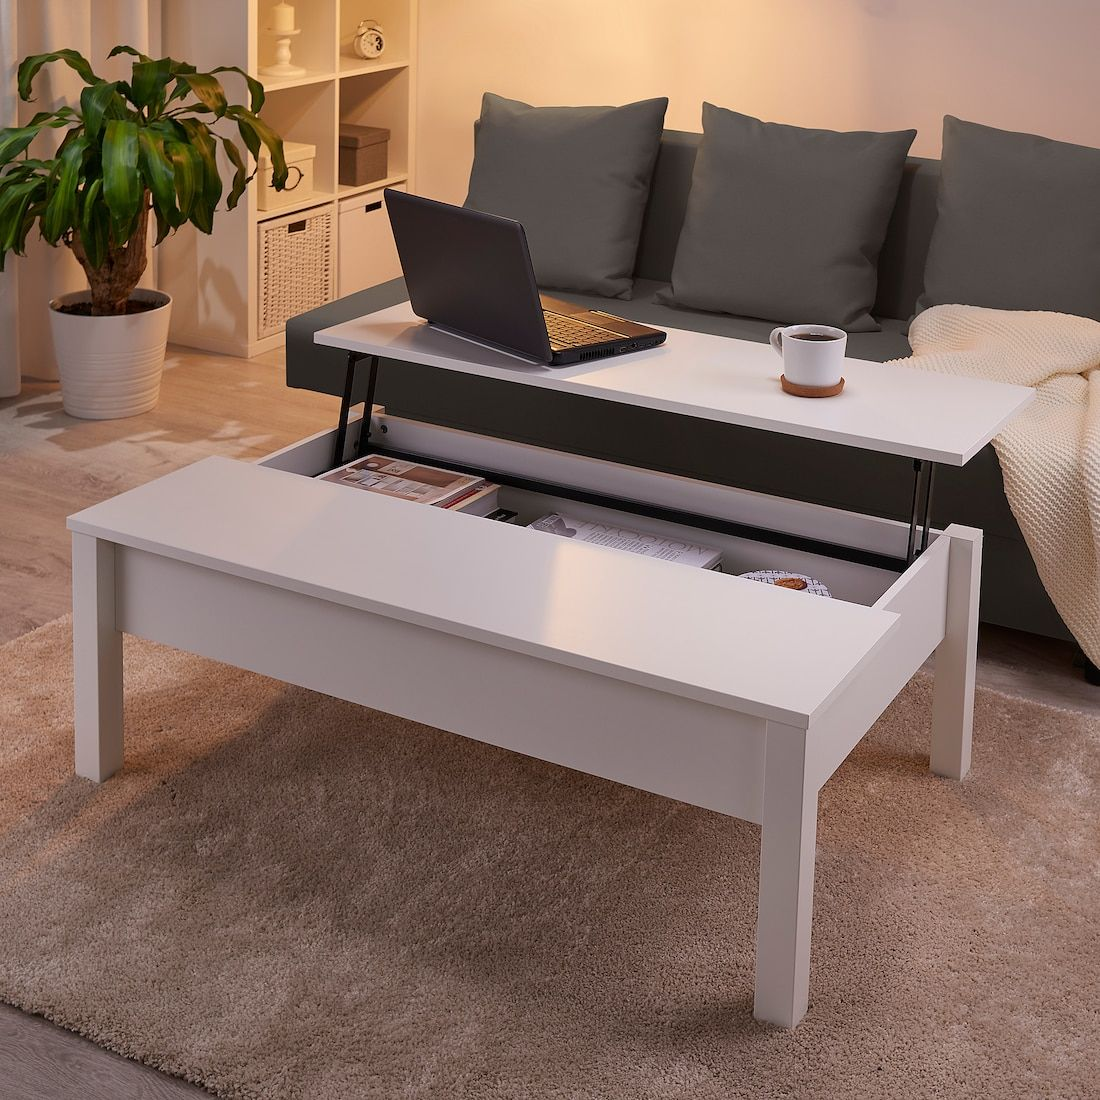 Trulstorp Coffee Table White 45 1 4x27 1 2 With Images White Coffee Table Living Room Living Room Table Brown Coffee Table